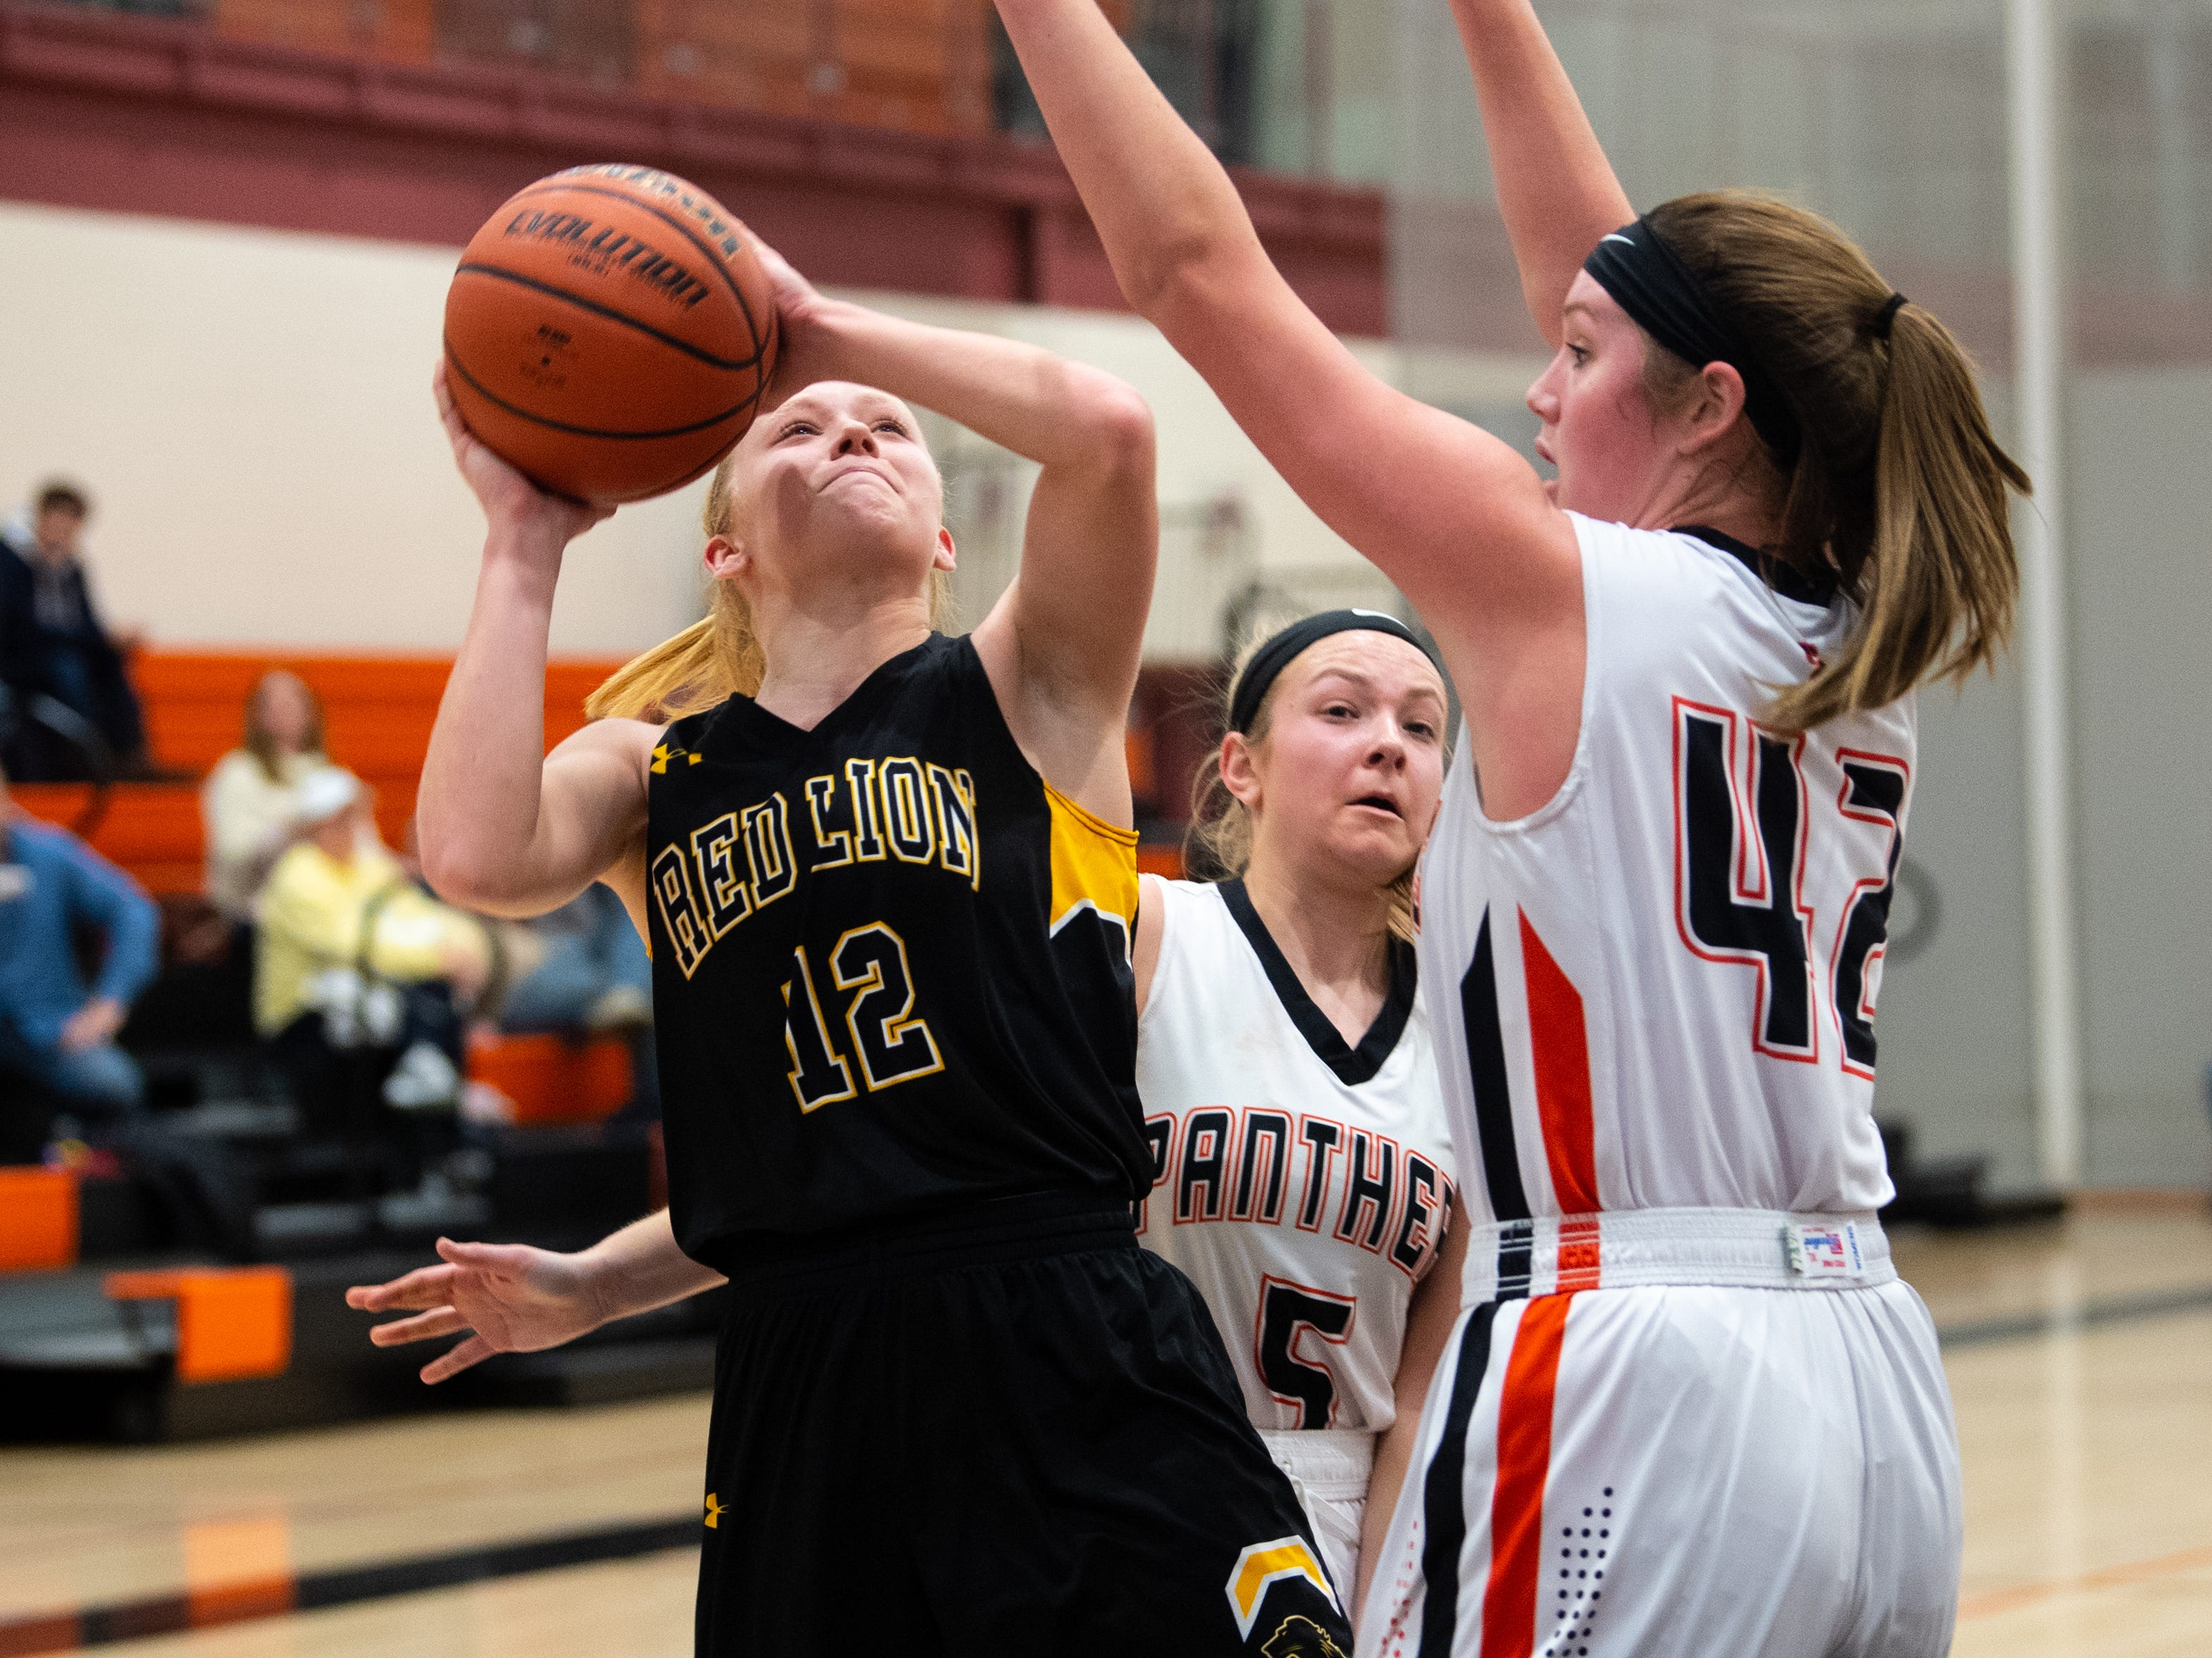 Paige Frey (12) tries to get a shot off during the girls' basketball game between Central York and Red Lion at Central York, Tuesday, December 11, 2018. The Panthers defeated the Lions 40-38.